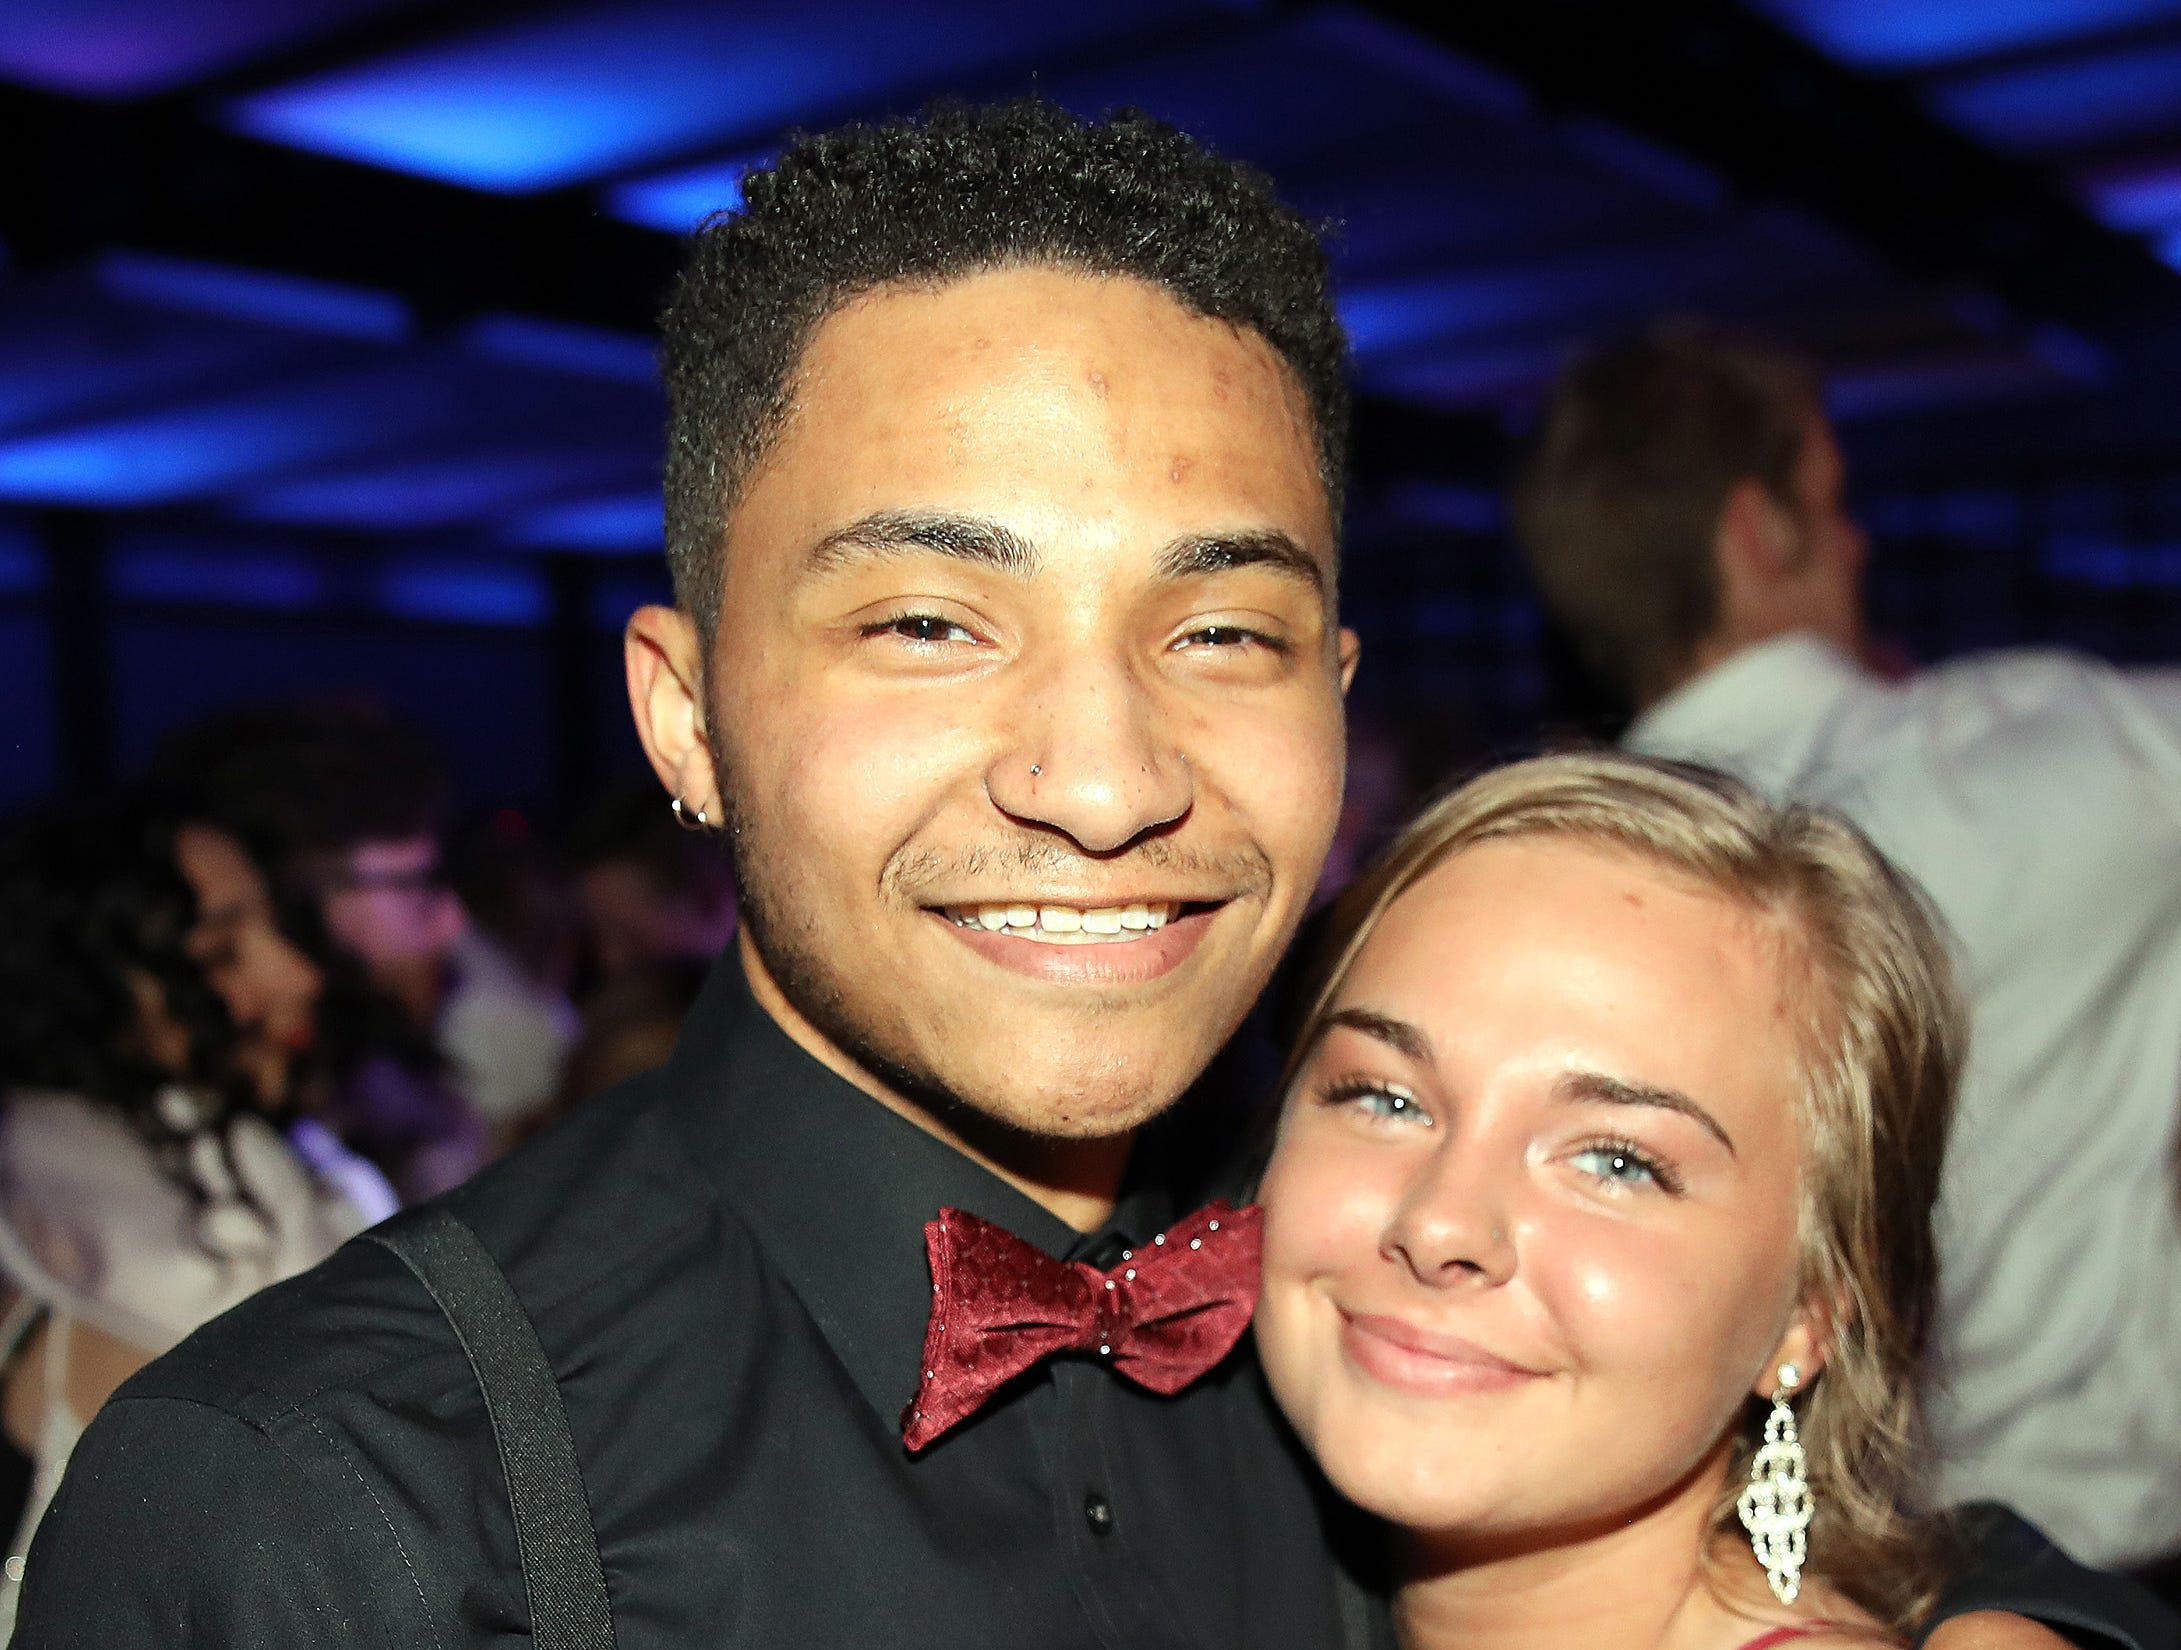 Chaise Russell and Alyssa Vander Vorst enjoy the Waukee High School Prom at the Ron Pearson Center in West Des Moines on Saturday, April 6, 2019.